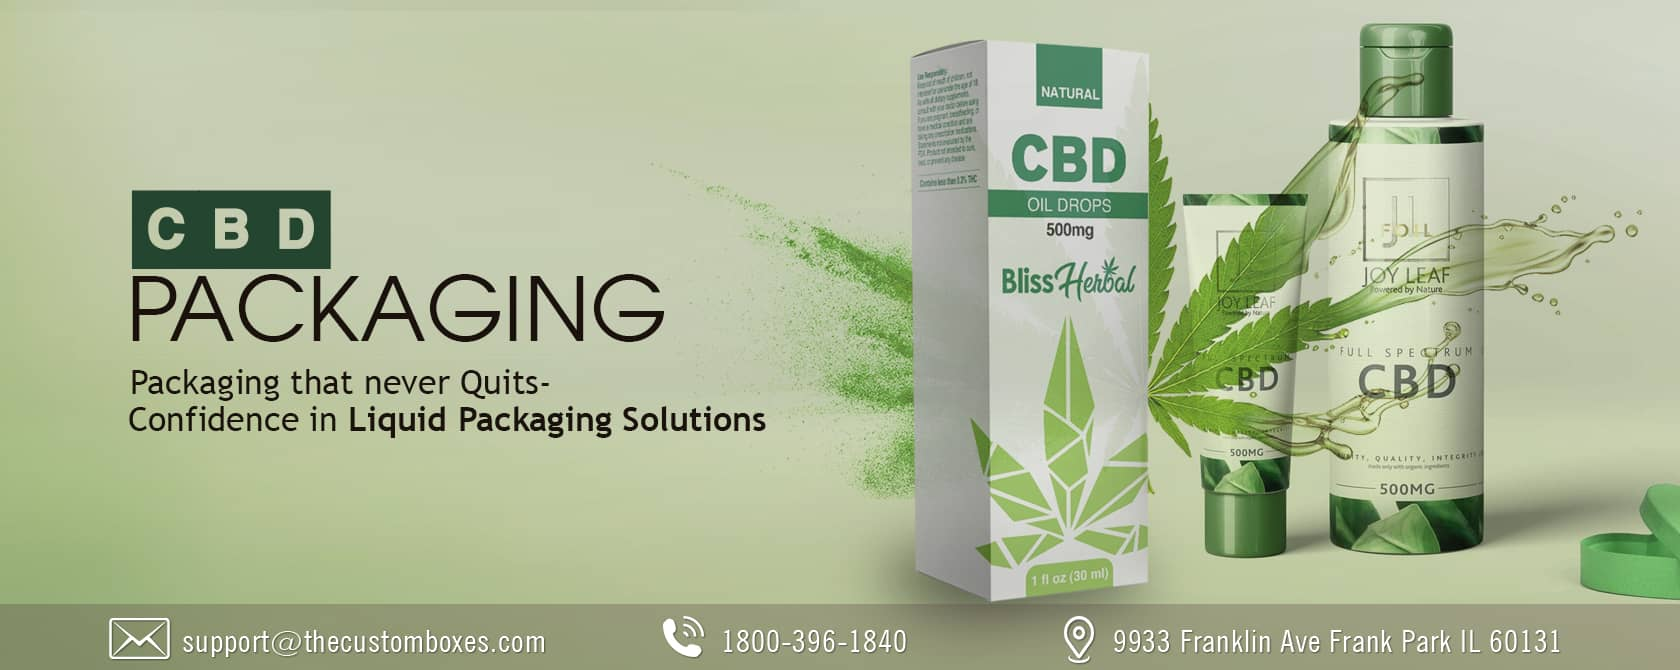 cbd_packaging.jpg